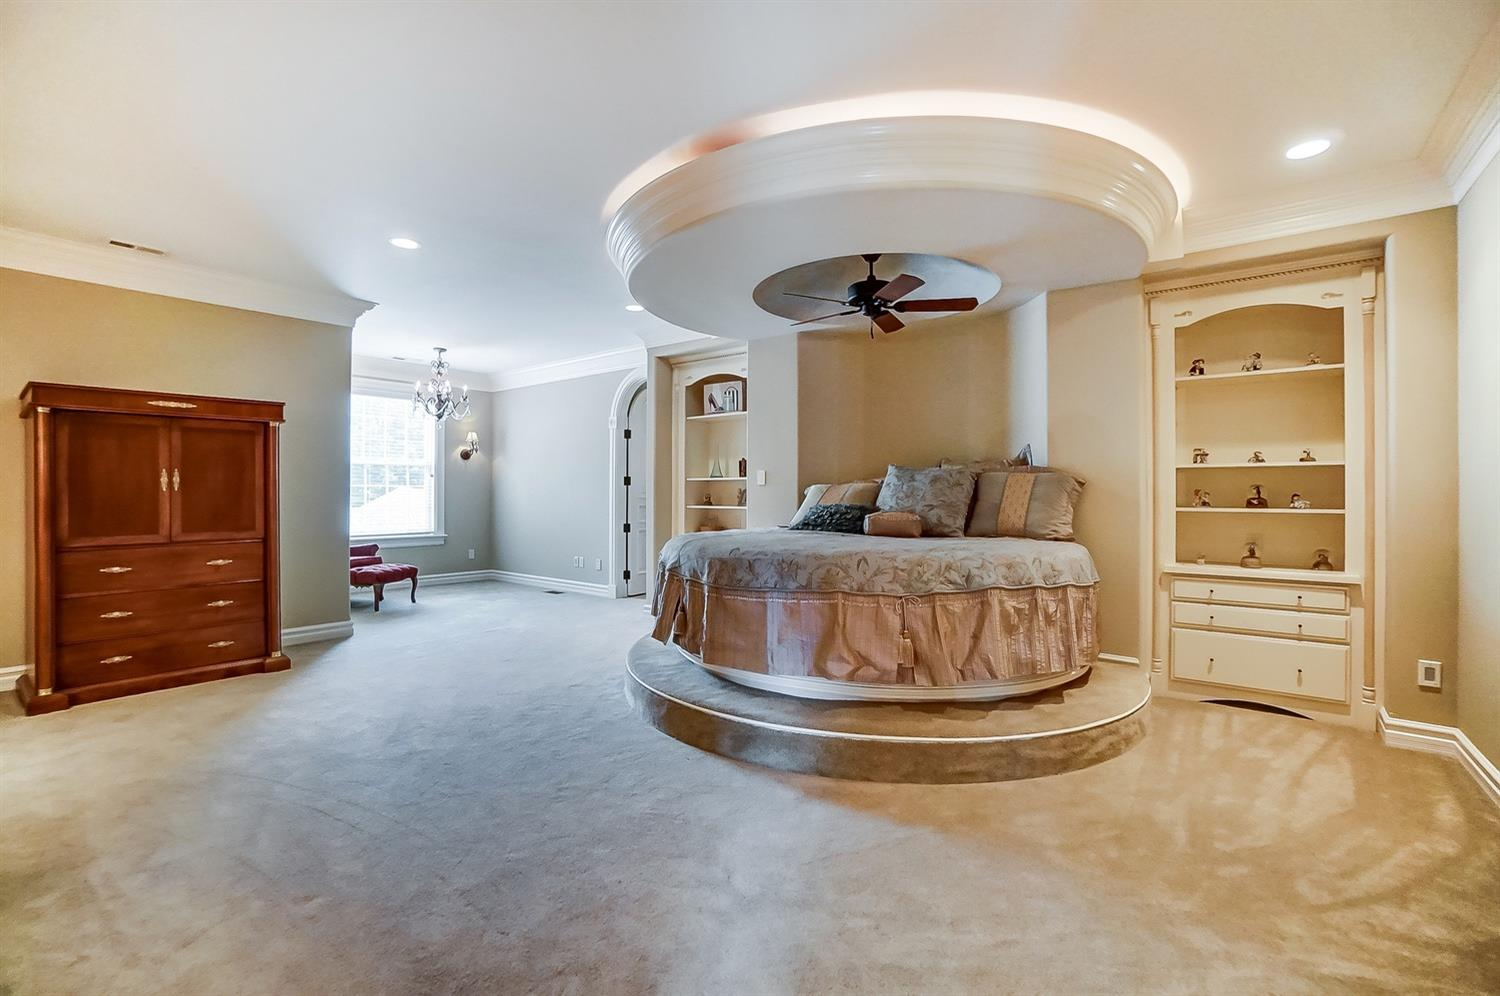 A guest room on the second floor features a circular bed, full bathroom, vanity area and large walk-in closet.